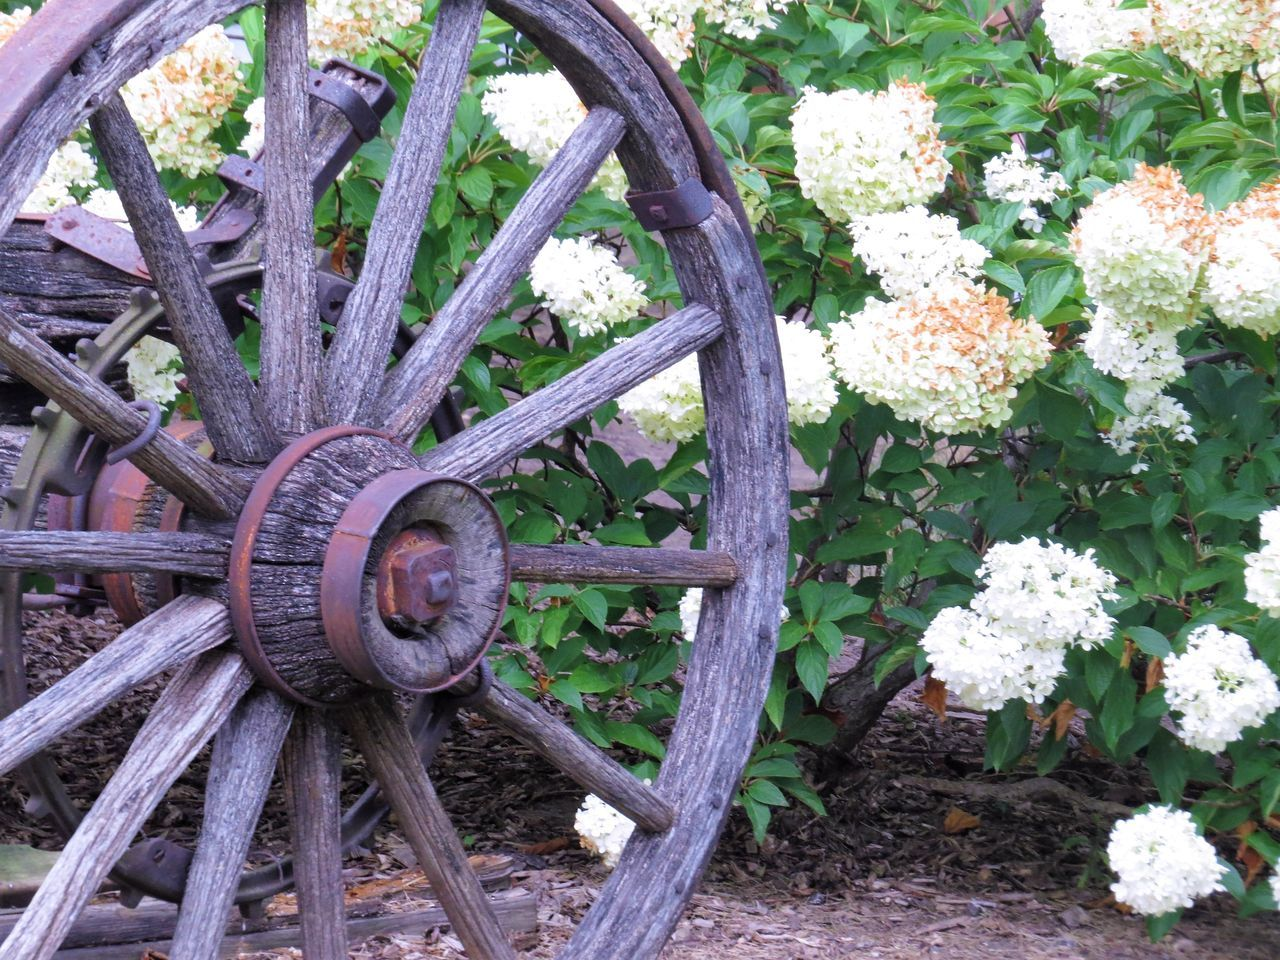 Beauty In Nature Close-up Day Deterioration Flower Grass Green Color Growth Nature No People Old Old Wagon Wheel In The Garden Outdoors Plant Tranquility Wheel Wood - Material